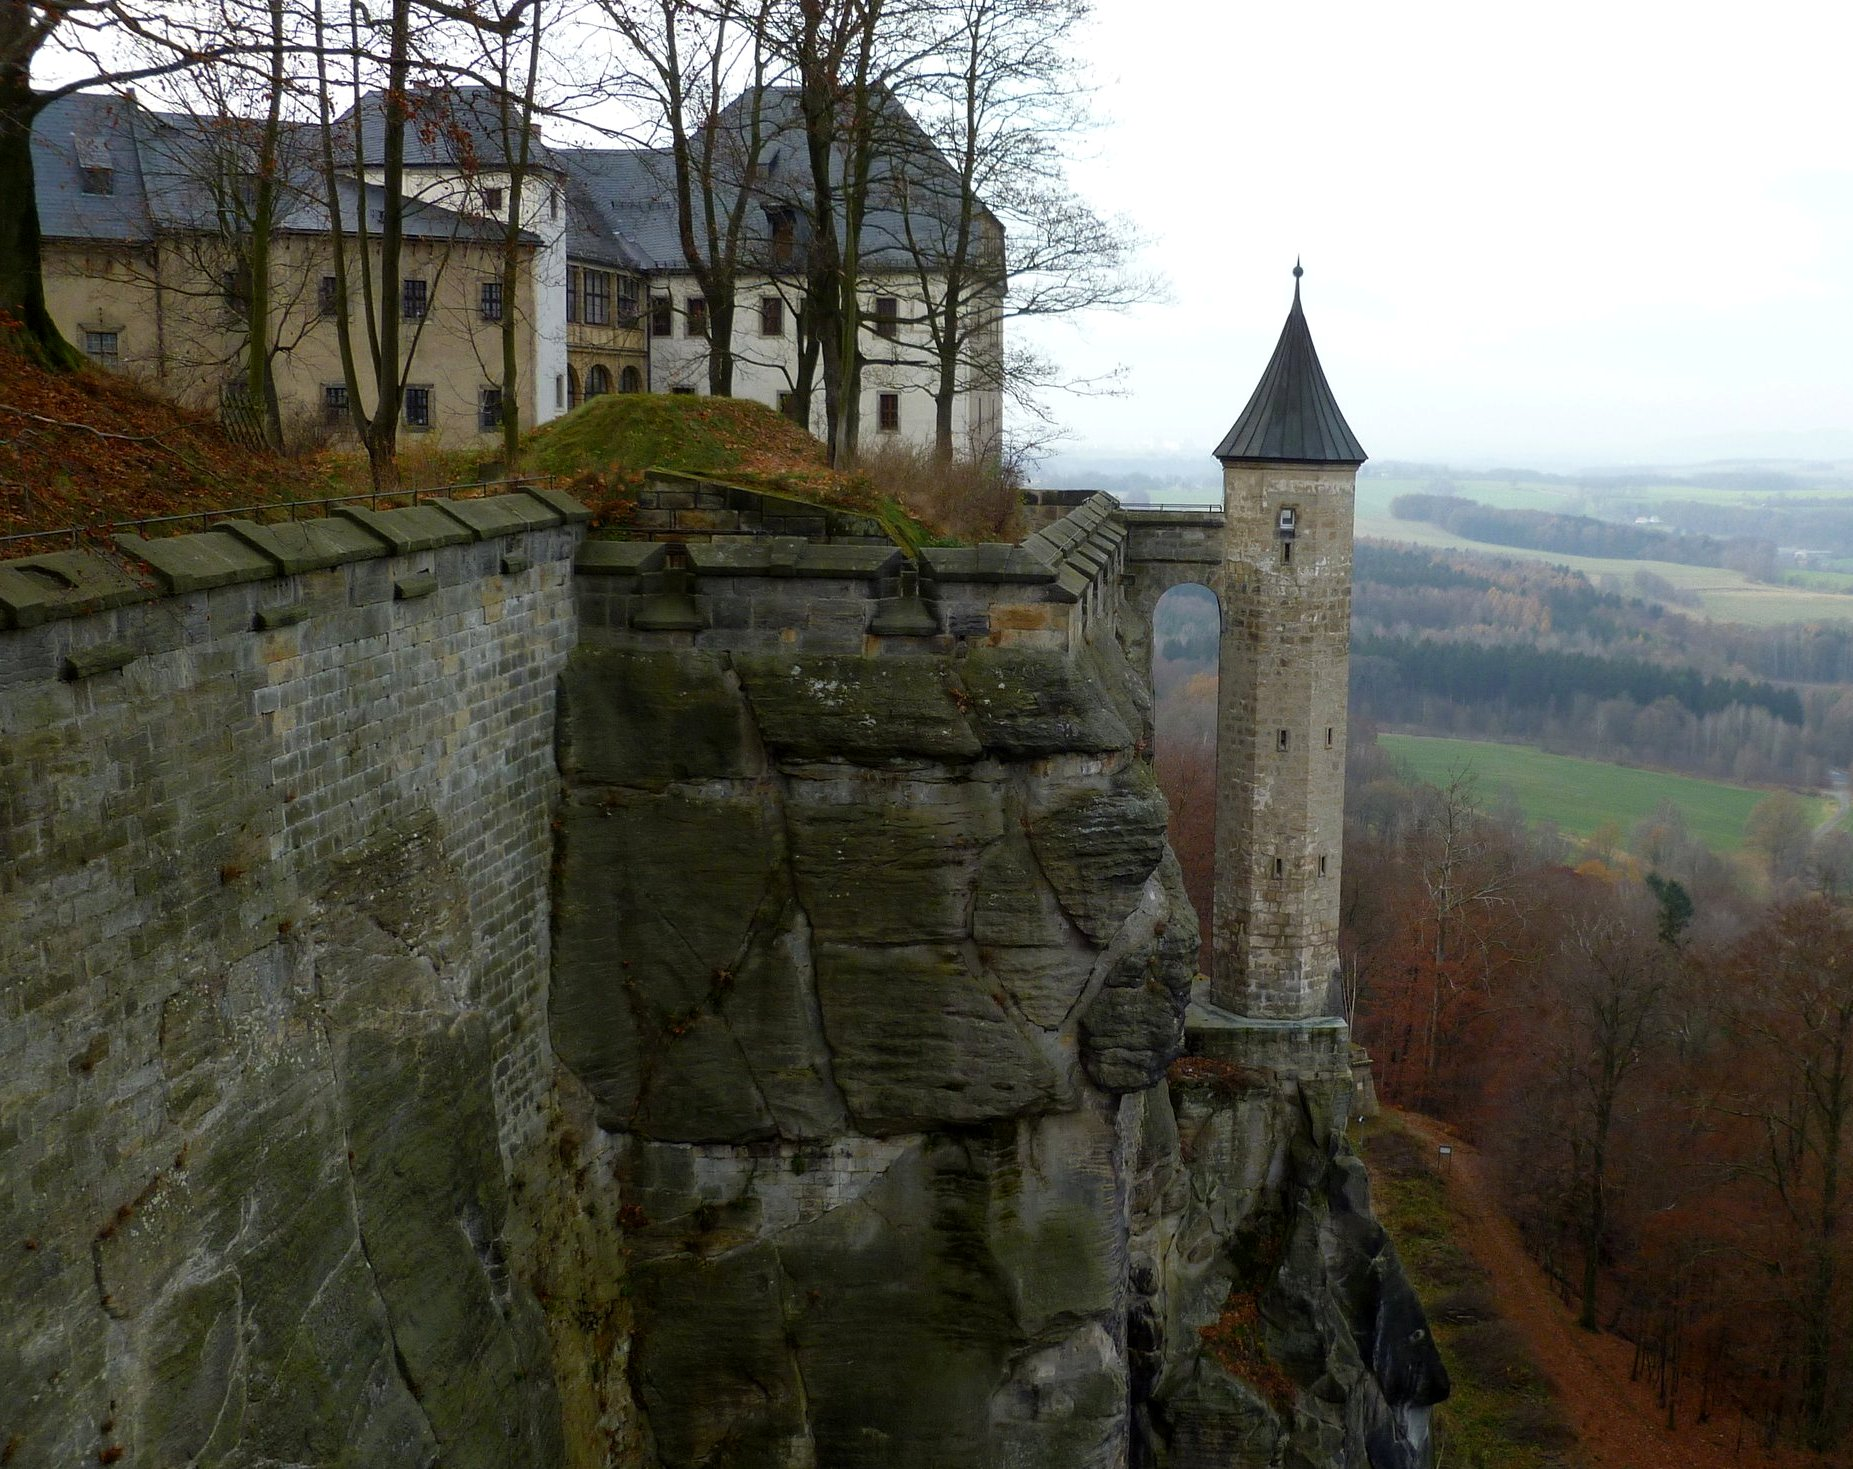 Lookout tower on Königstein Fortress in Germany